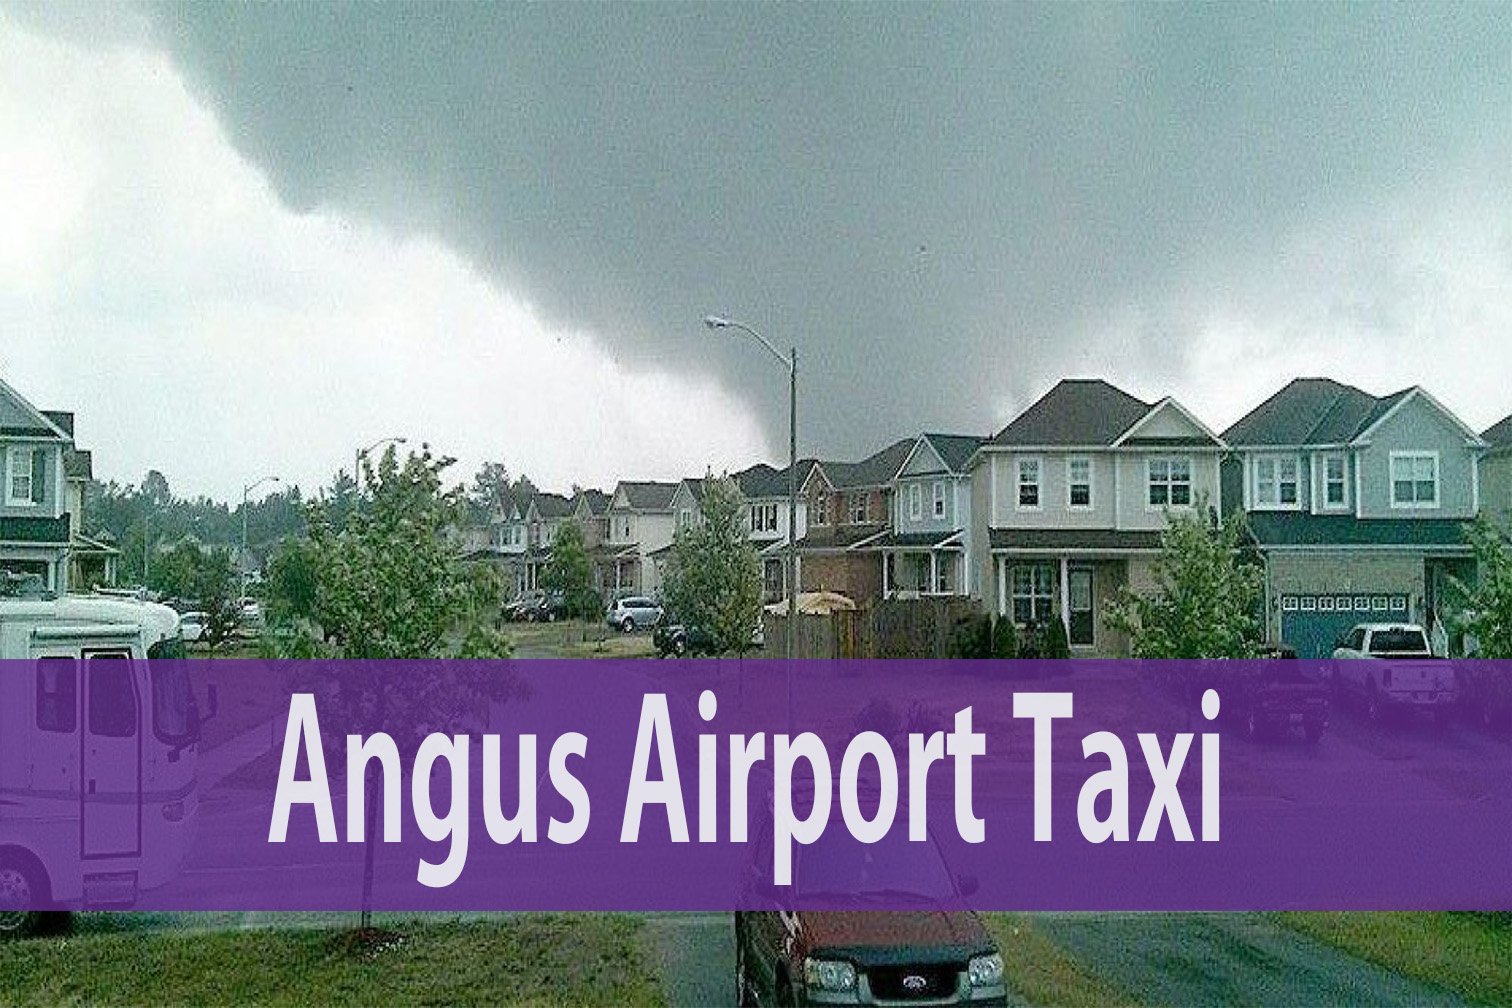 Angus airport taxi